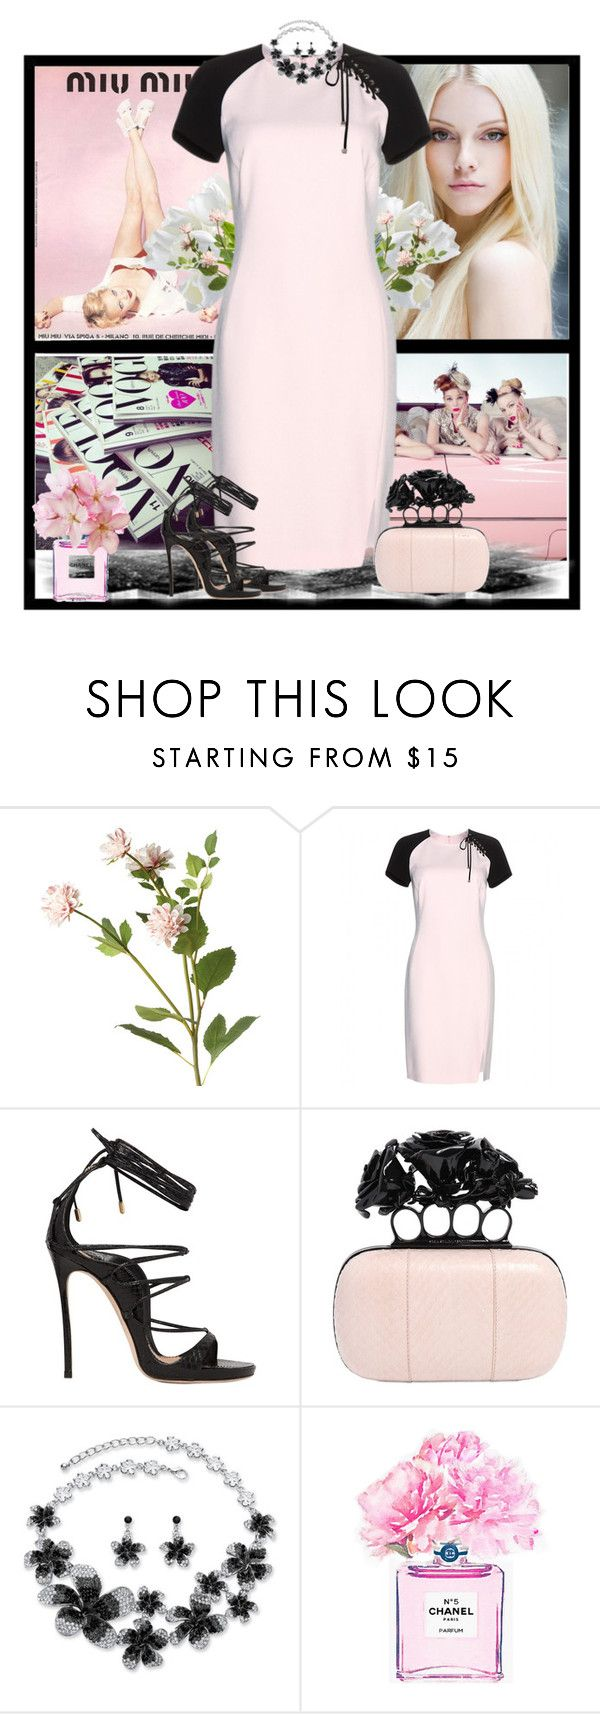 """""""Untitled #1000"""" by jothomas ❤ liked on Polyvore featuring moda, SANCHEZ, Miu Miu, OKA, Emilio Pucci, Dsquared2, Alexander McQueen ve Chanel"""